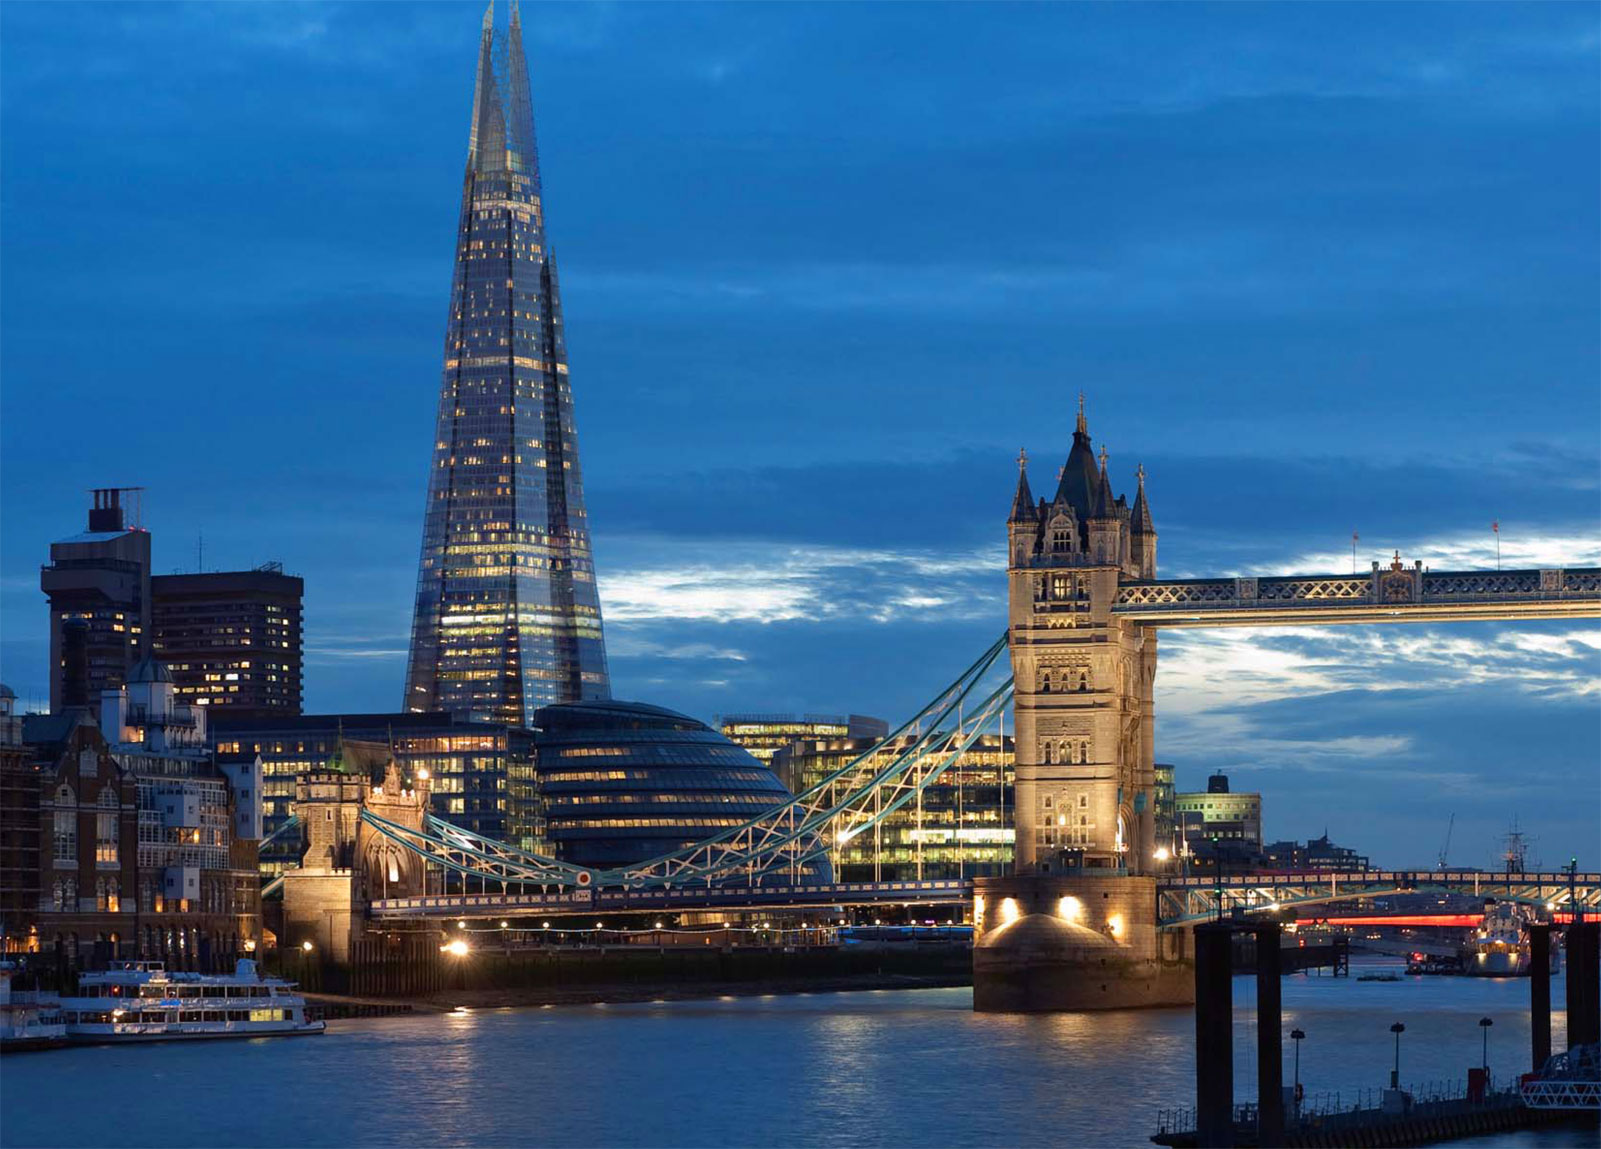 Shangri La London - Luxury Hotel at the Shard in London